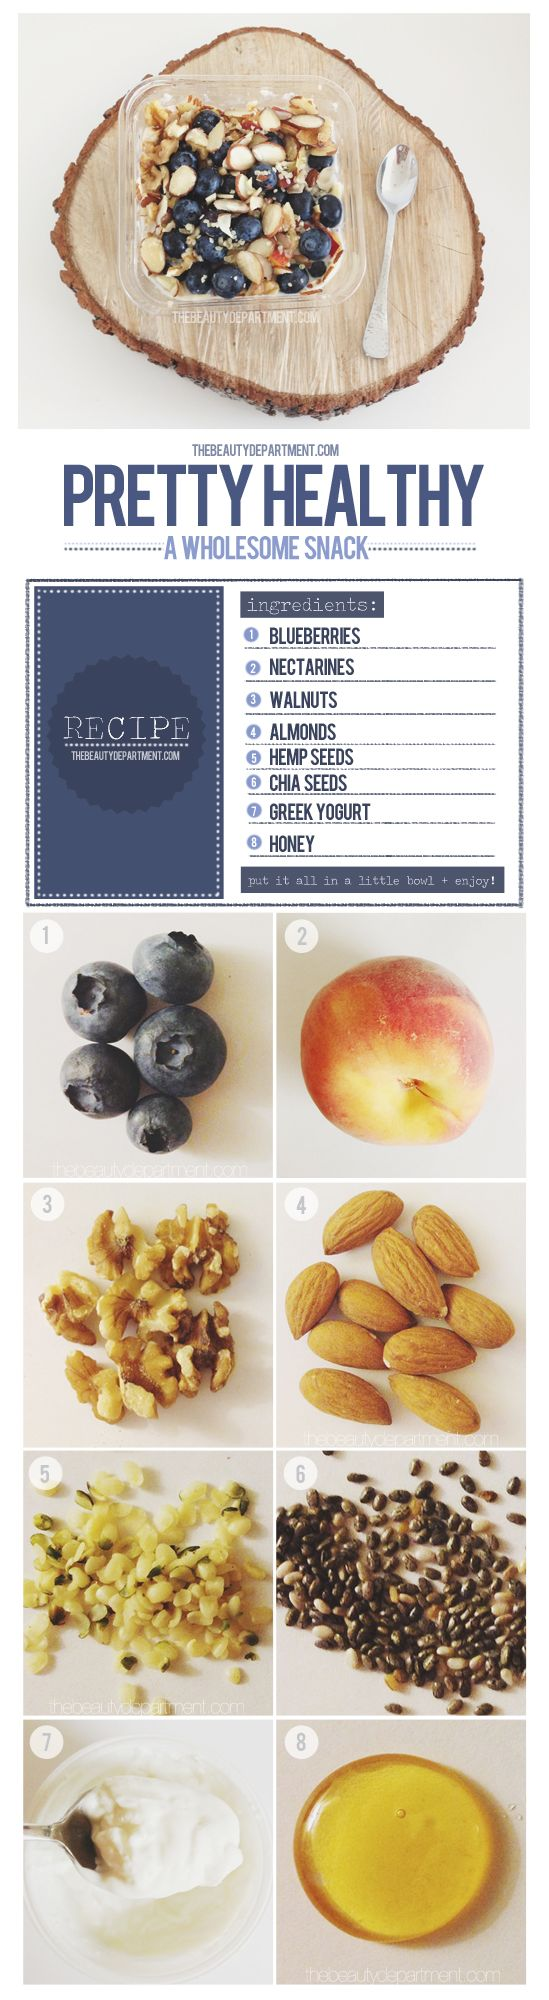 Healthy Snacking. Re-pin if you wanna try this! A favorite re-pin of www.facebook.com/GoLove.Ltd